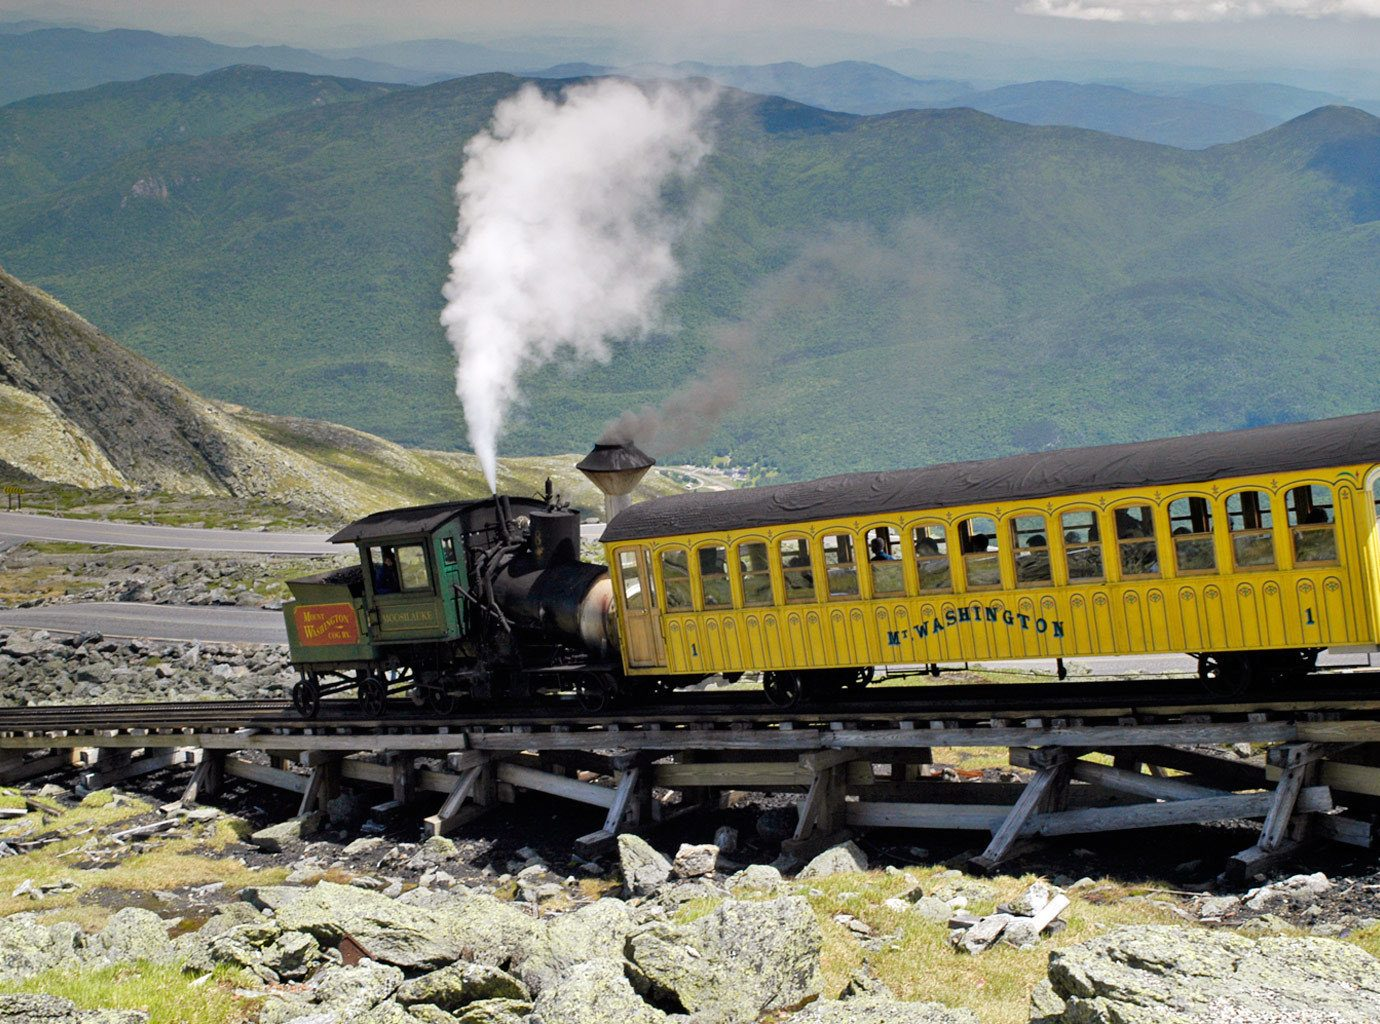 Adventure Mountains Natural wonders Nature Outdoor Activities Outdoors Scenic views mountain sky ground transport train vehicle rail transport track locomotive rolling stock railroad car hillside